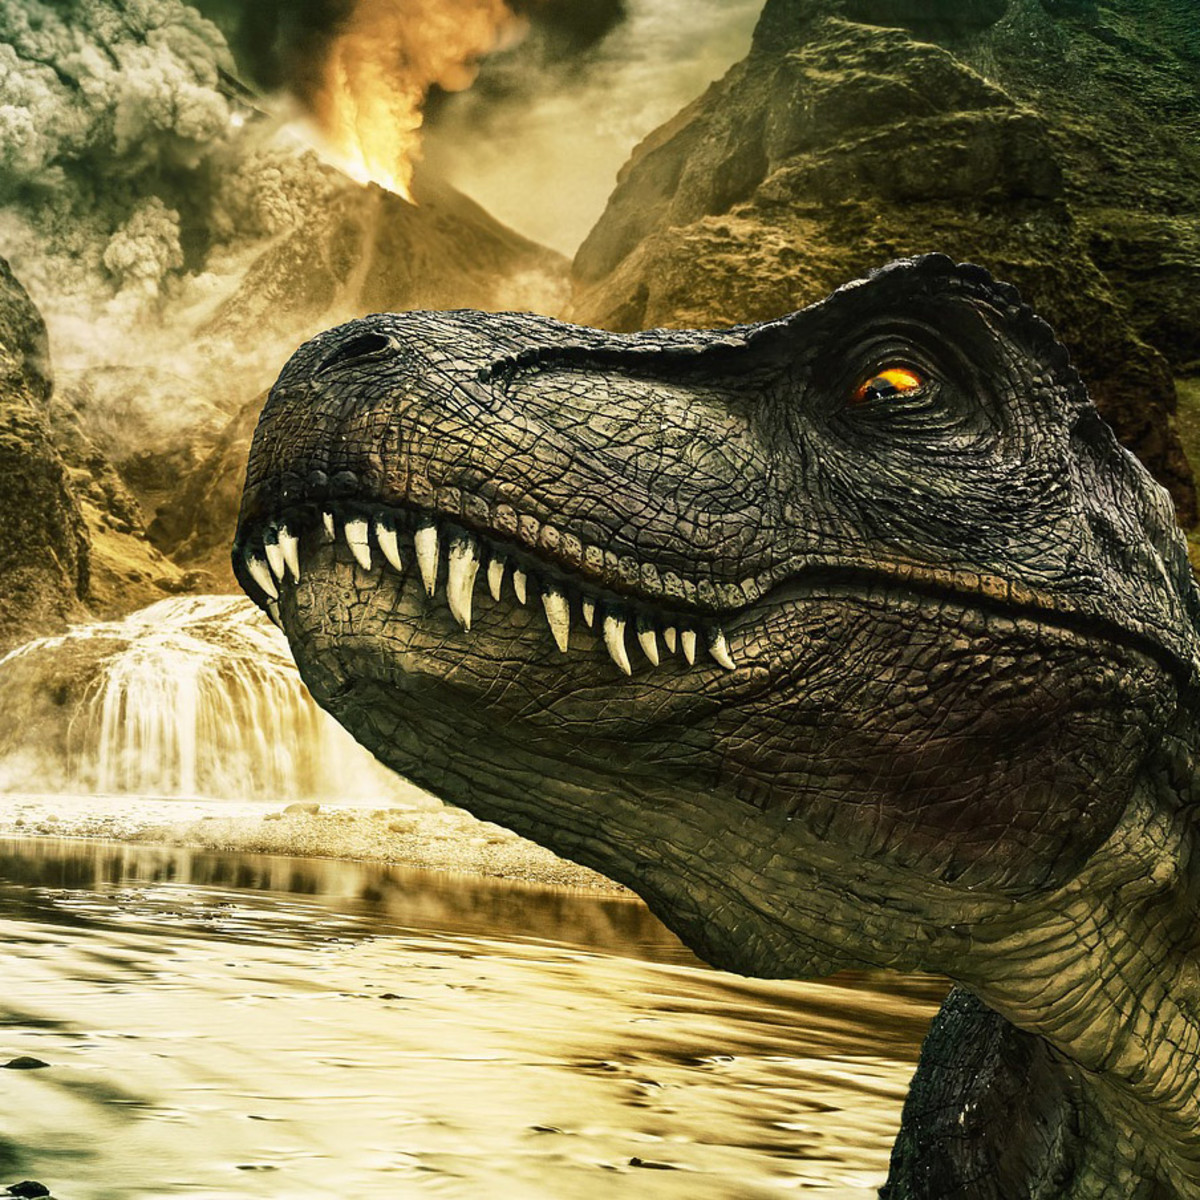 Ferdinand and the Dinosaurs: A YA Sci-Fi Short Story - Chapter 3